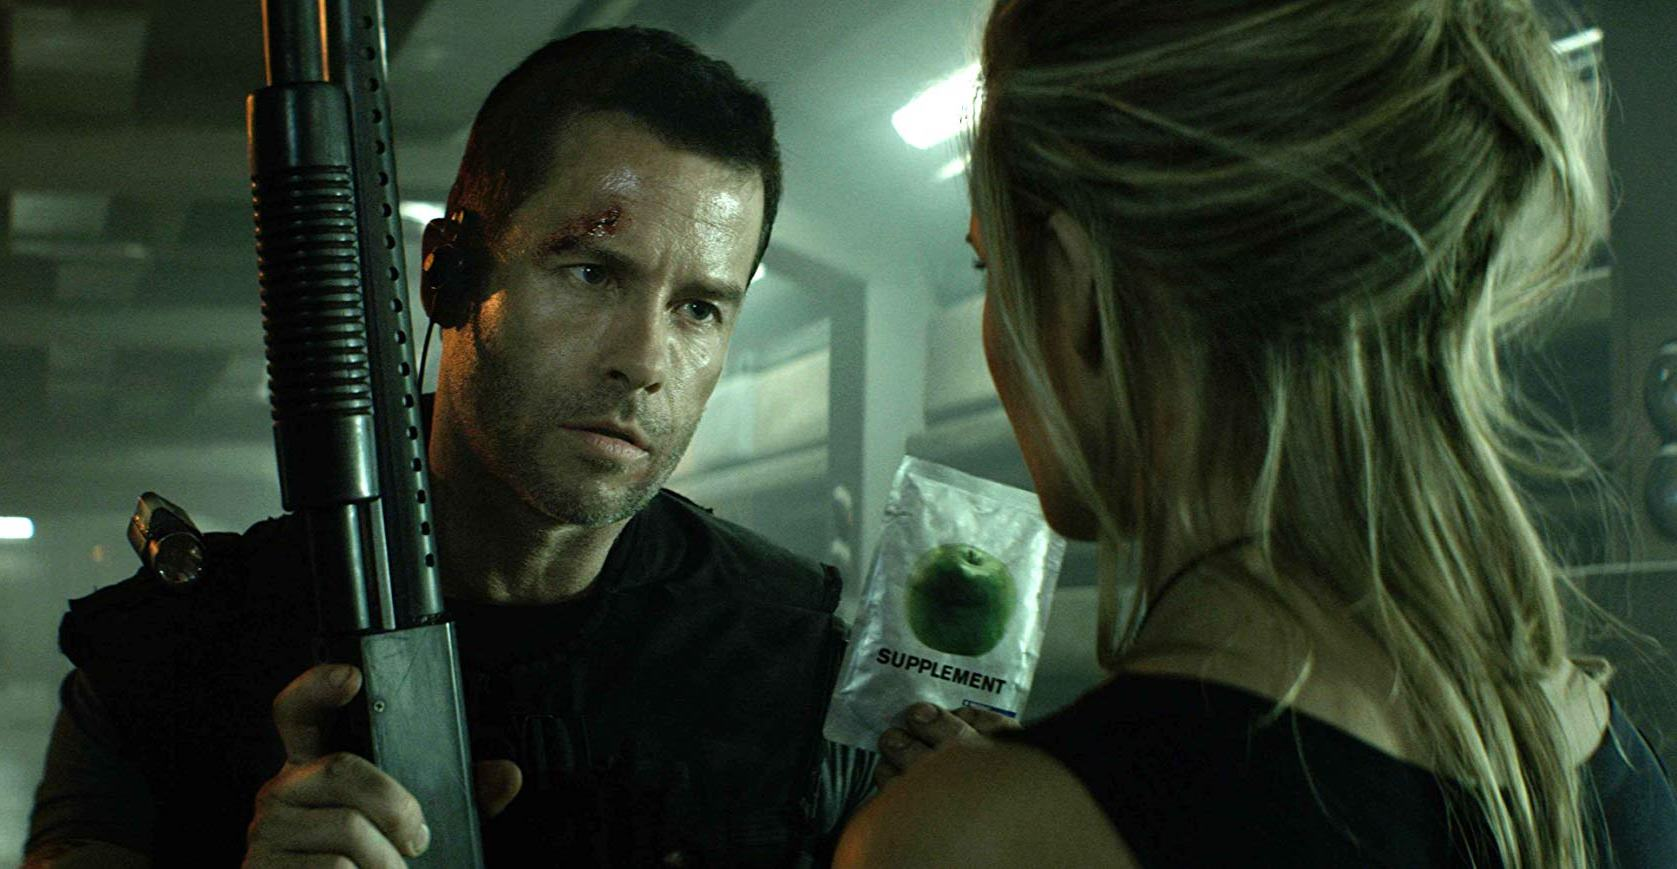 Snow (Guy Pearce) in action to save The President's daughter (Maggie Grace) in Lockout (2012)